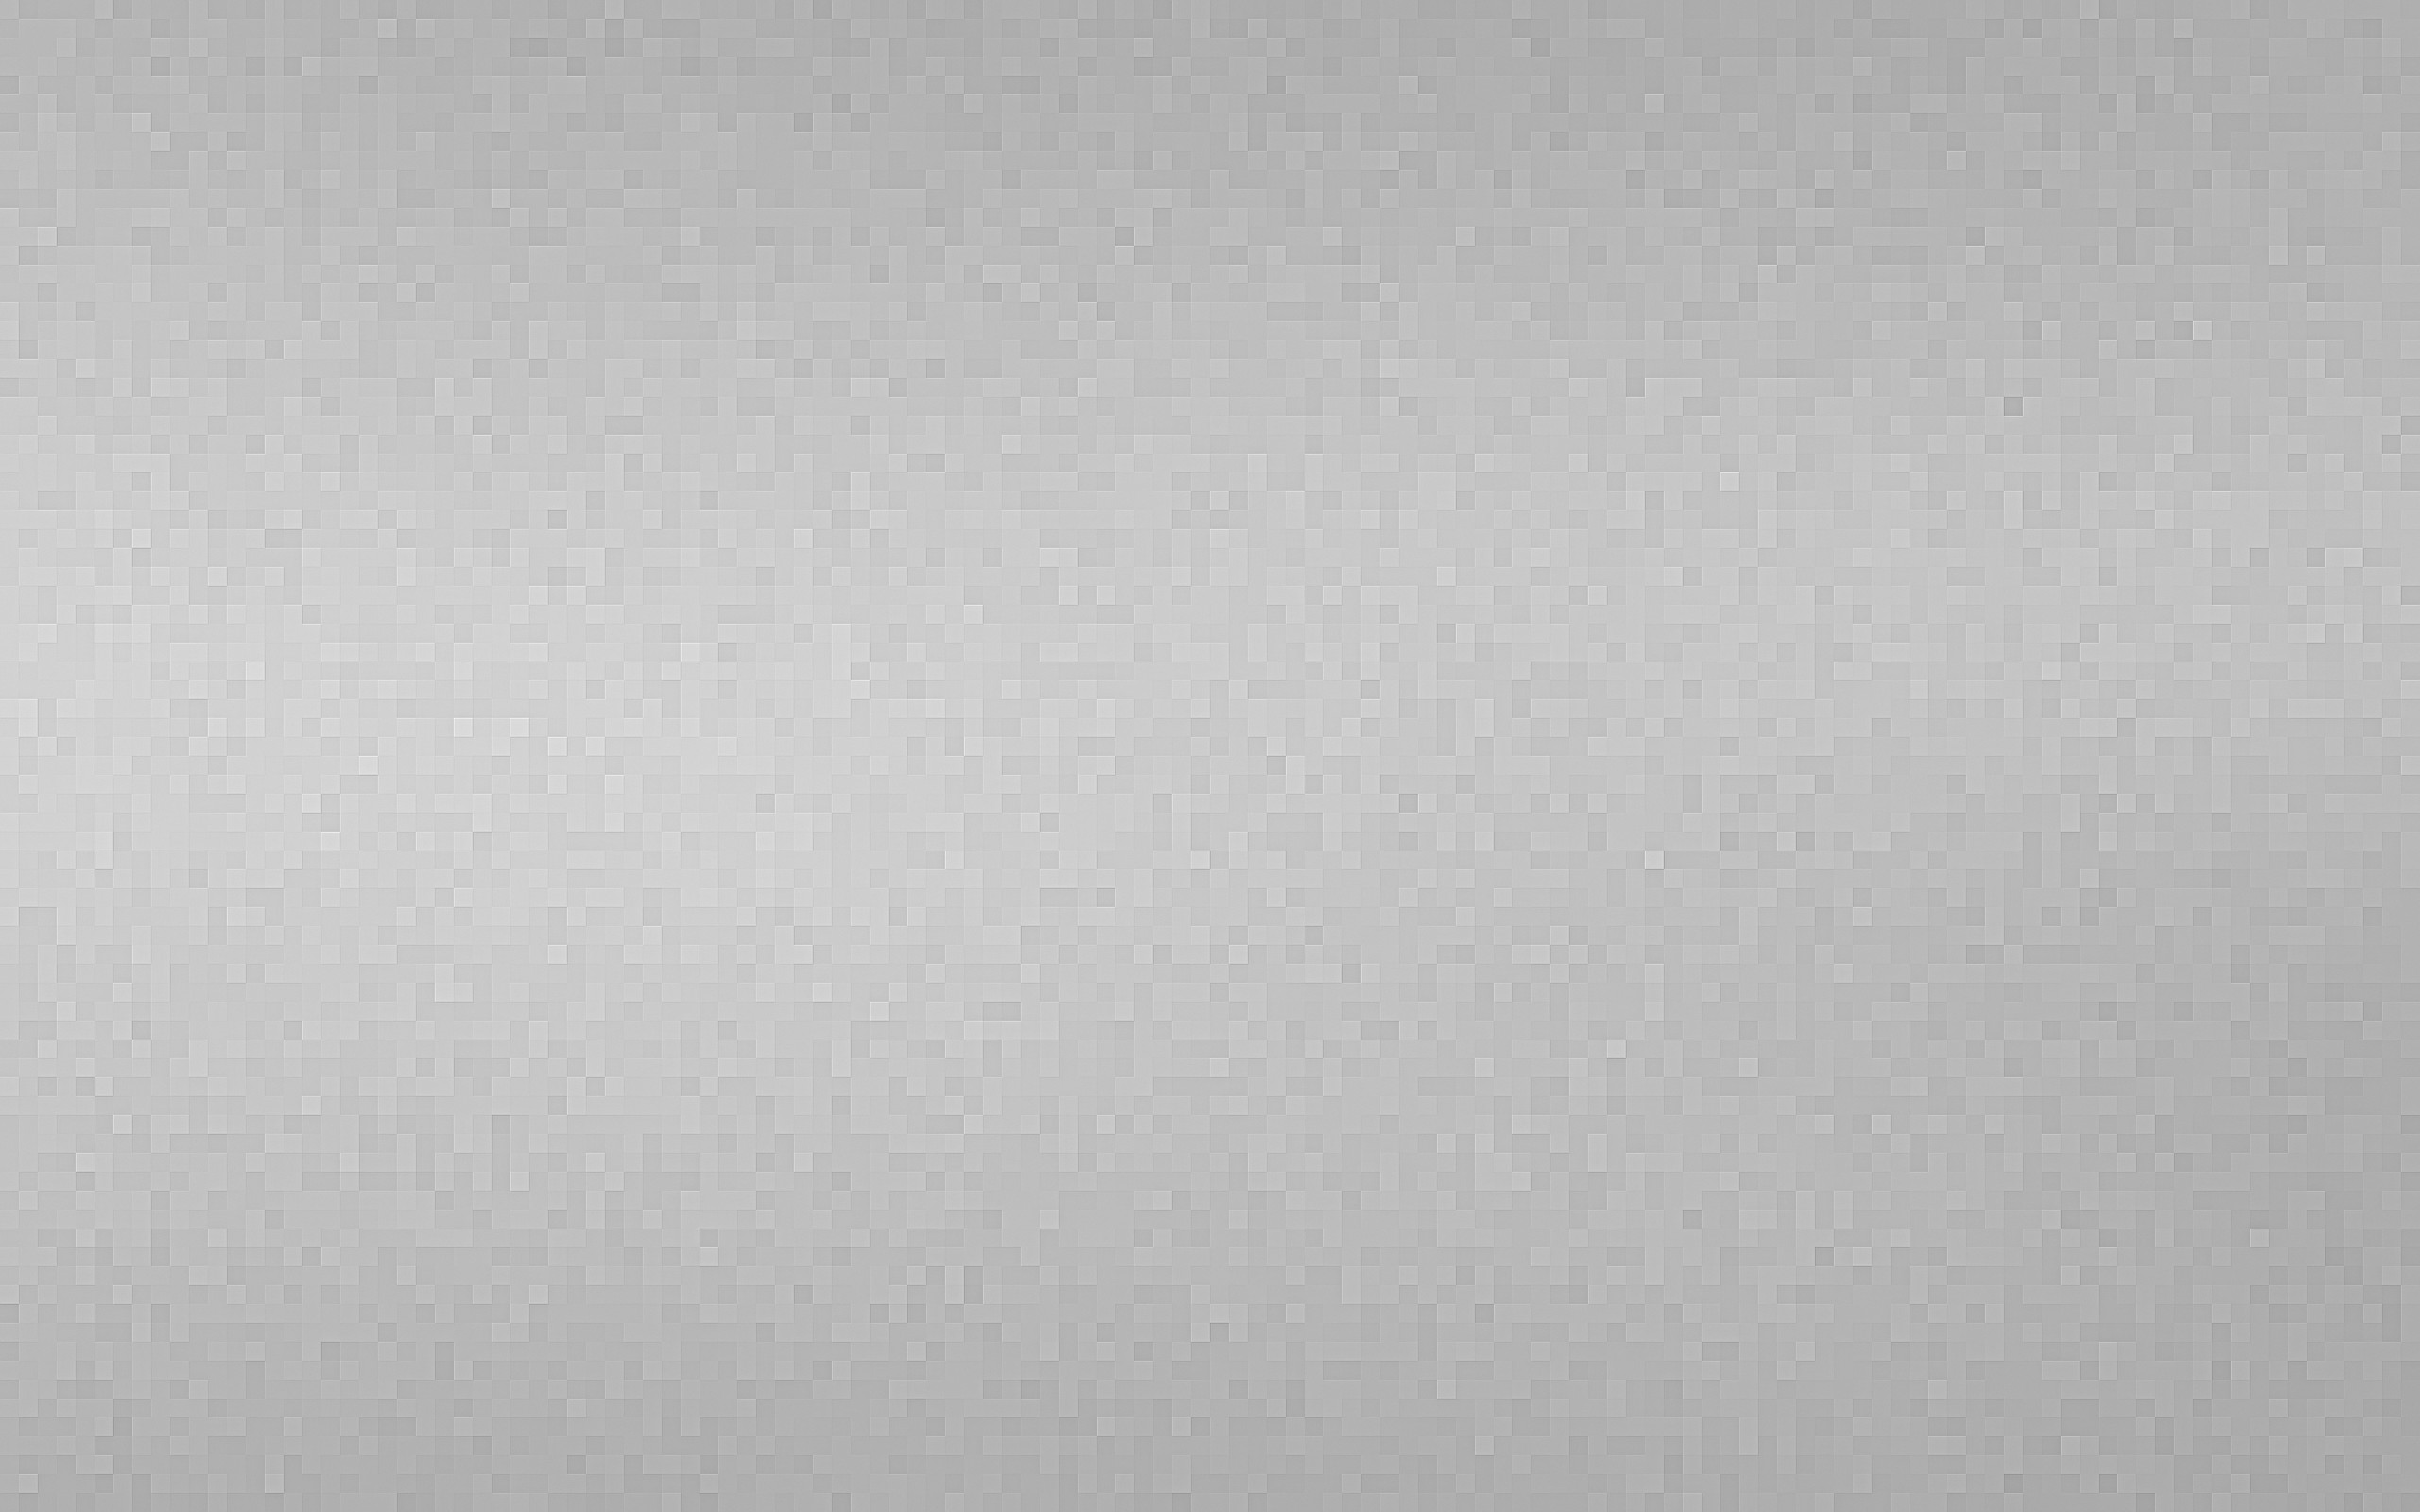 High Quality Solid Gray Images Collection for Desktop